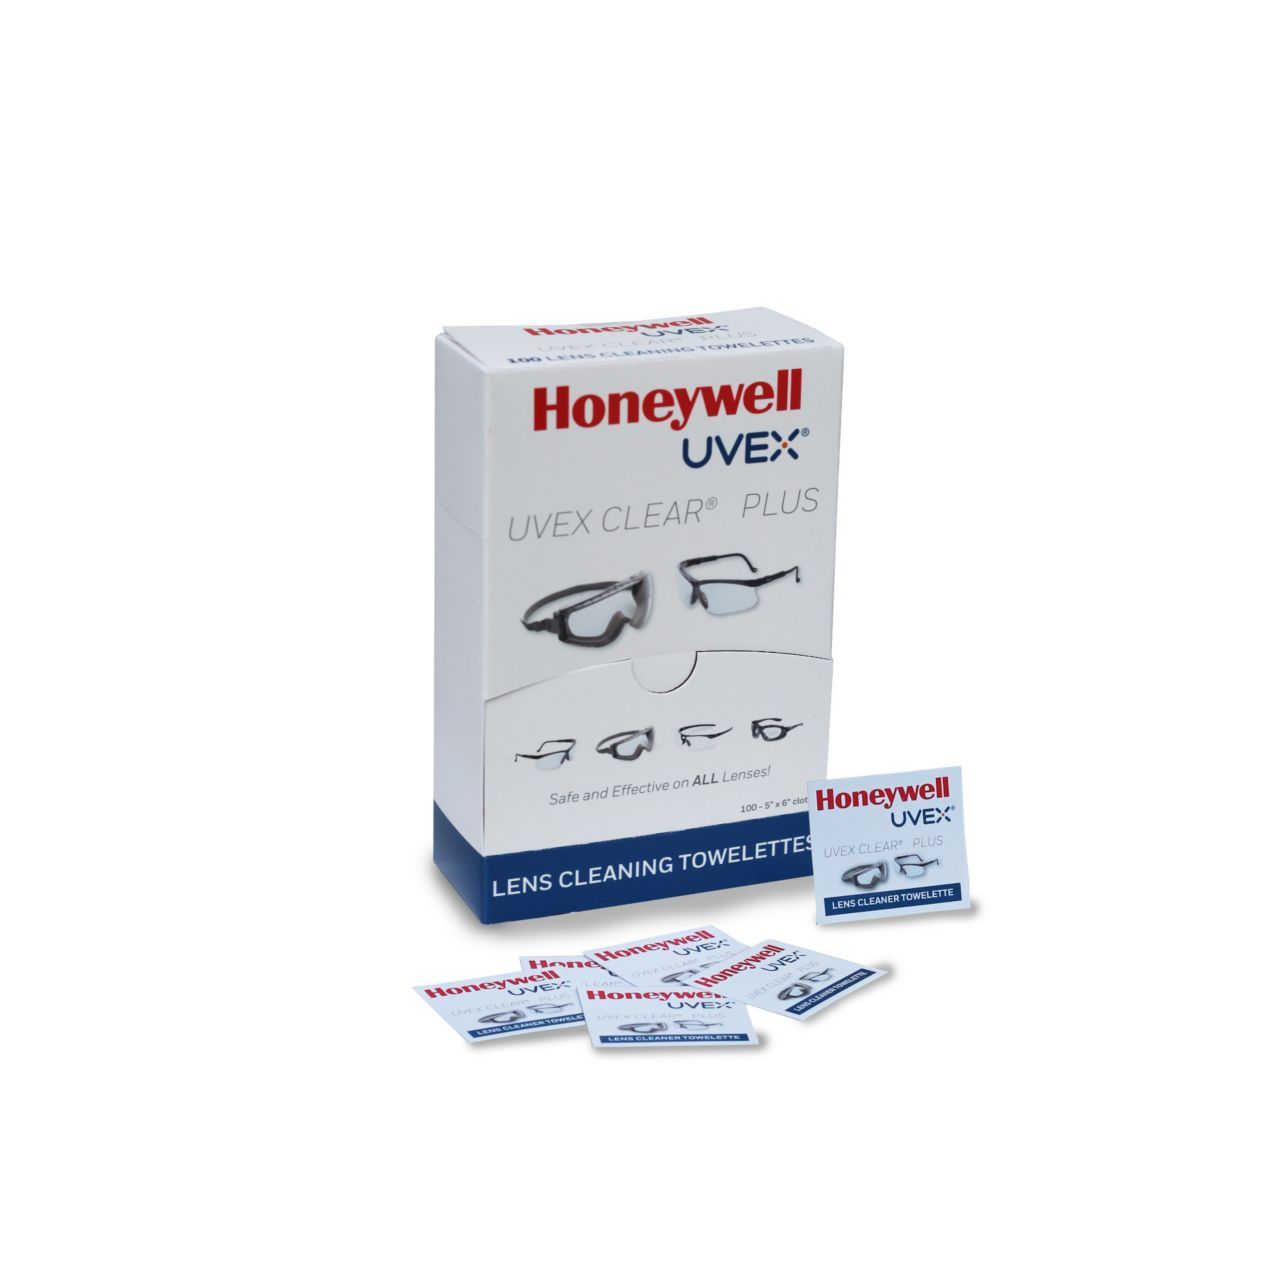 uvex-clear-plus-towelettes